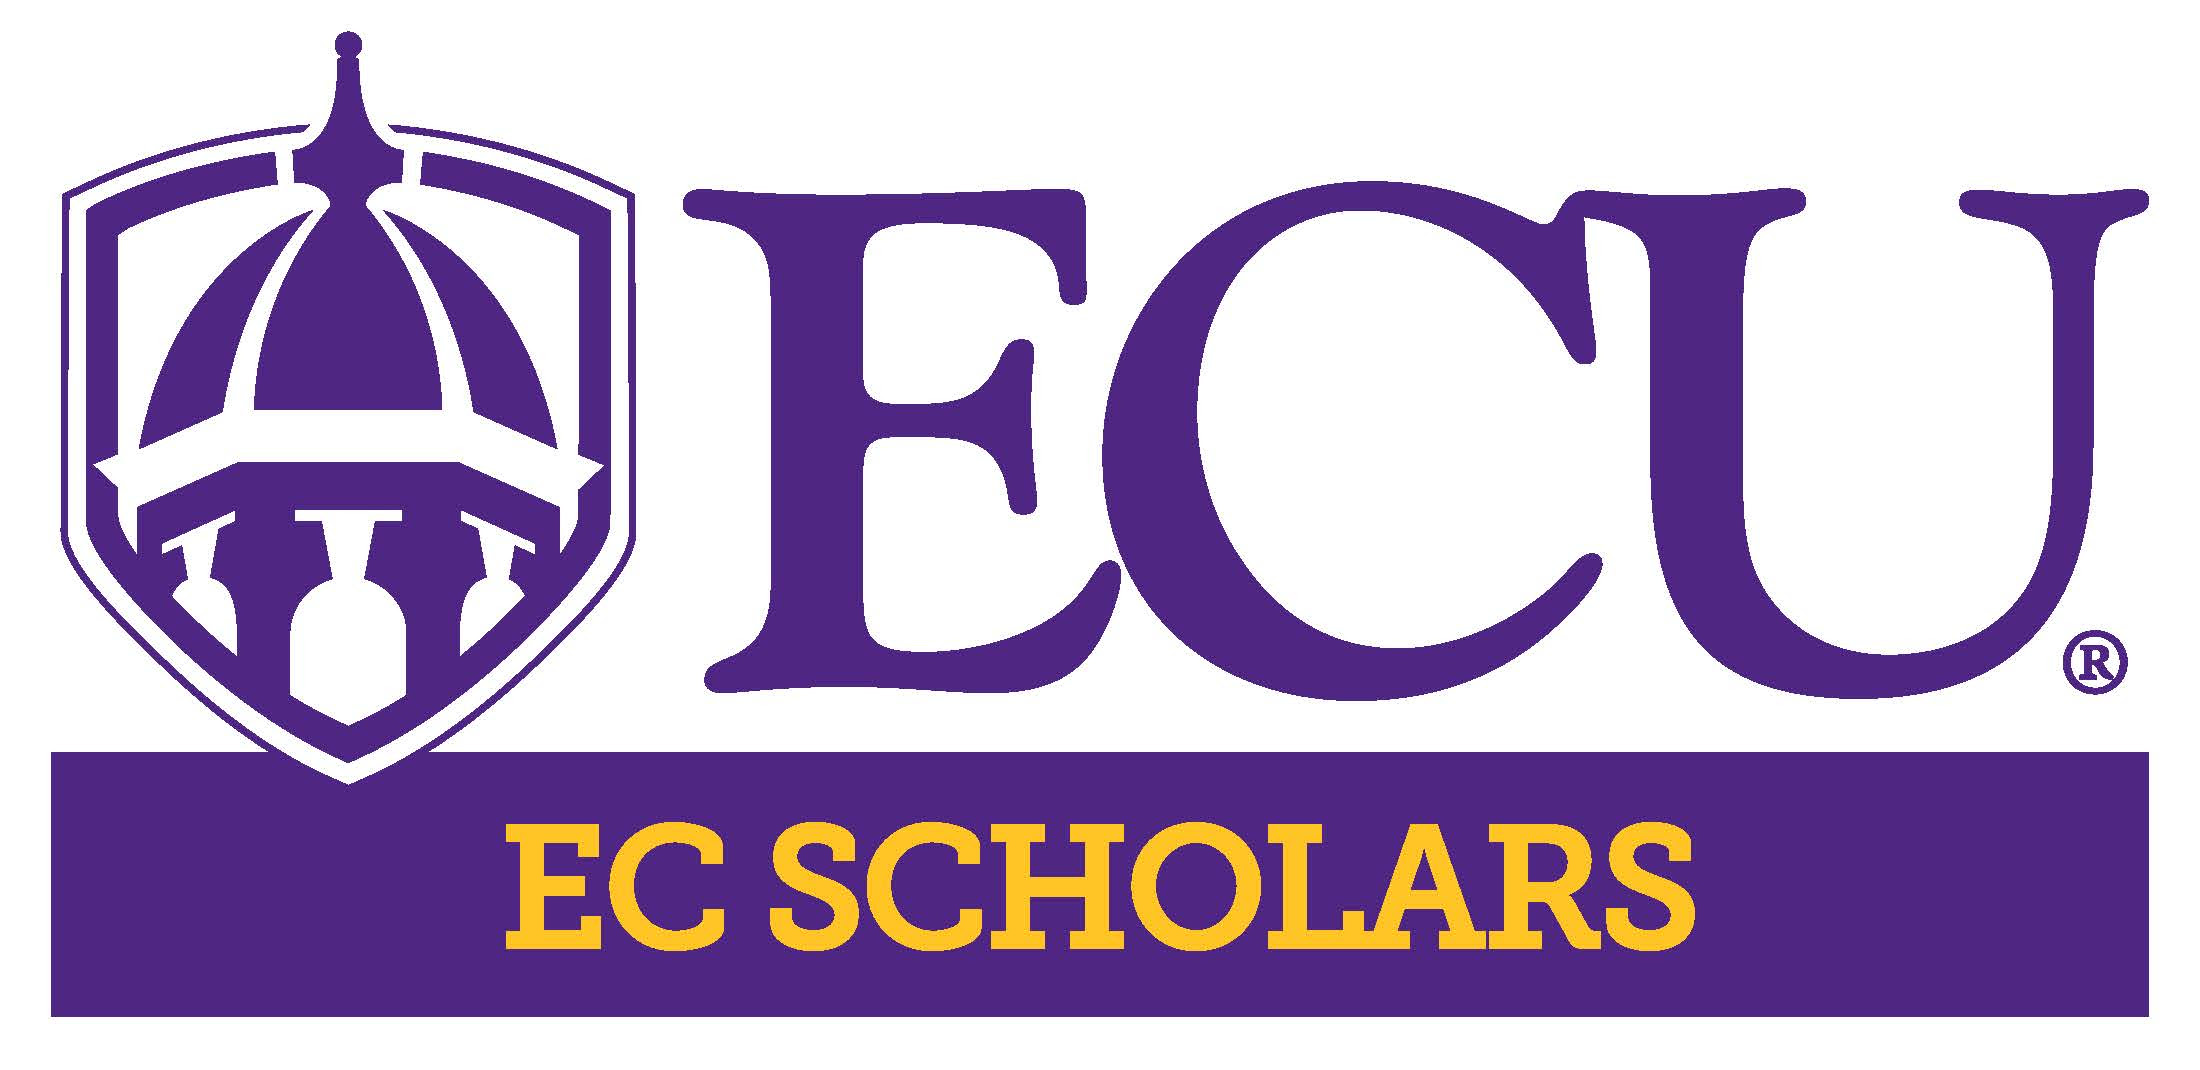 East Carolina University, EC Scholars